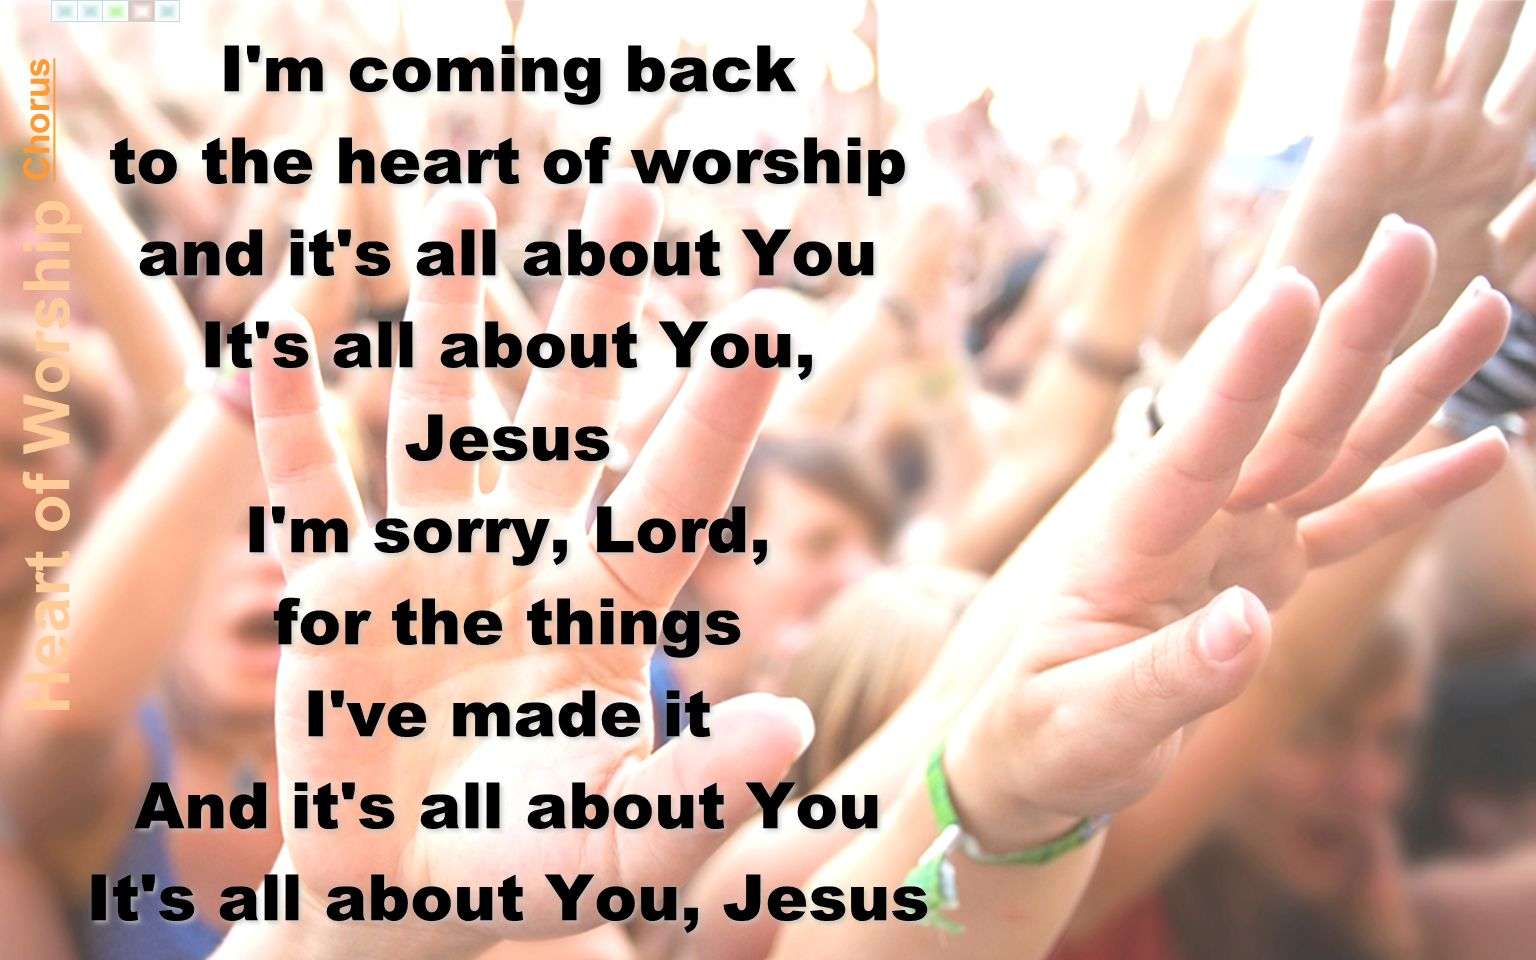 I'm coming back to the heart of worship and it's all about You It's all about You, Jesus I'm sorry, Lord, for the things I've made it And it's all abo